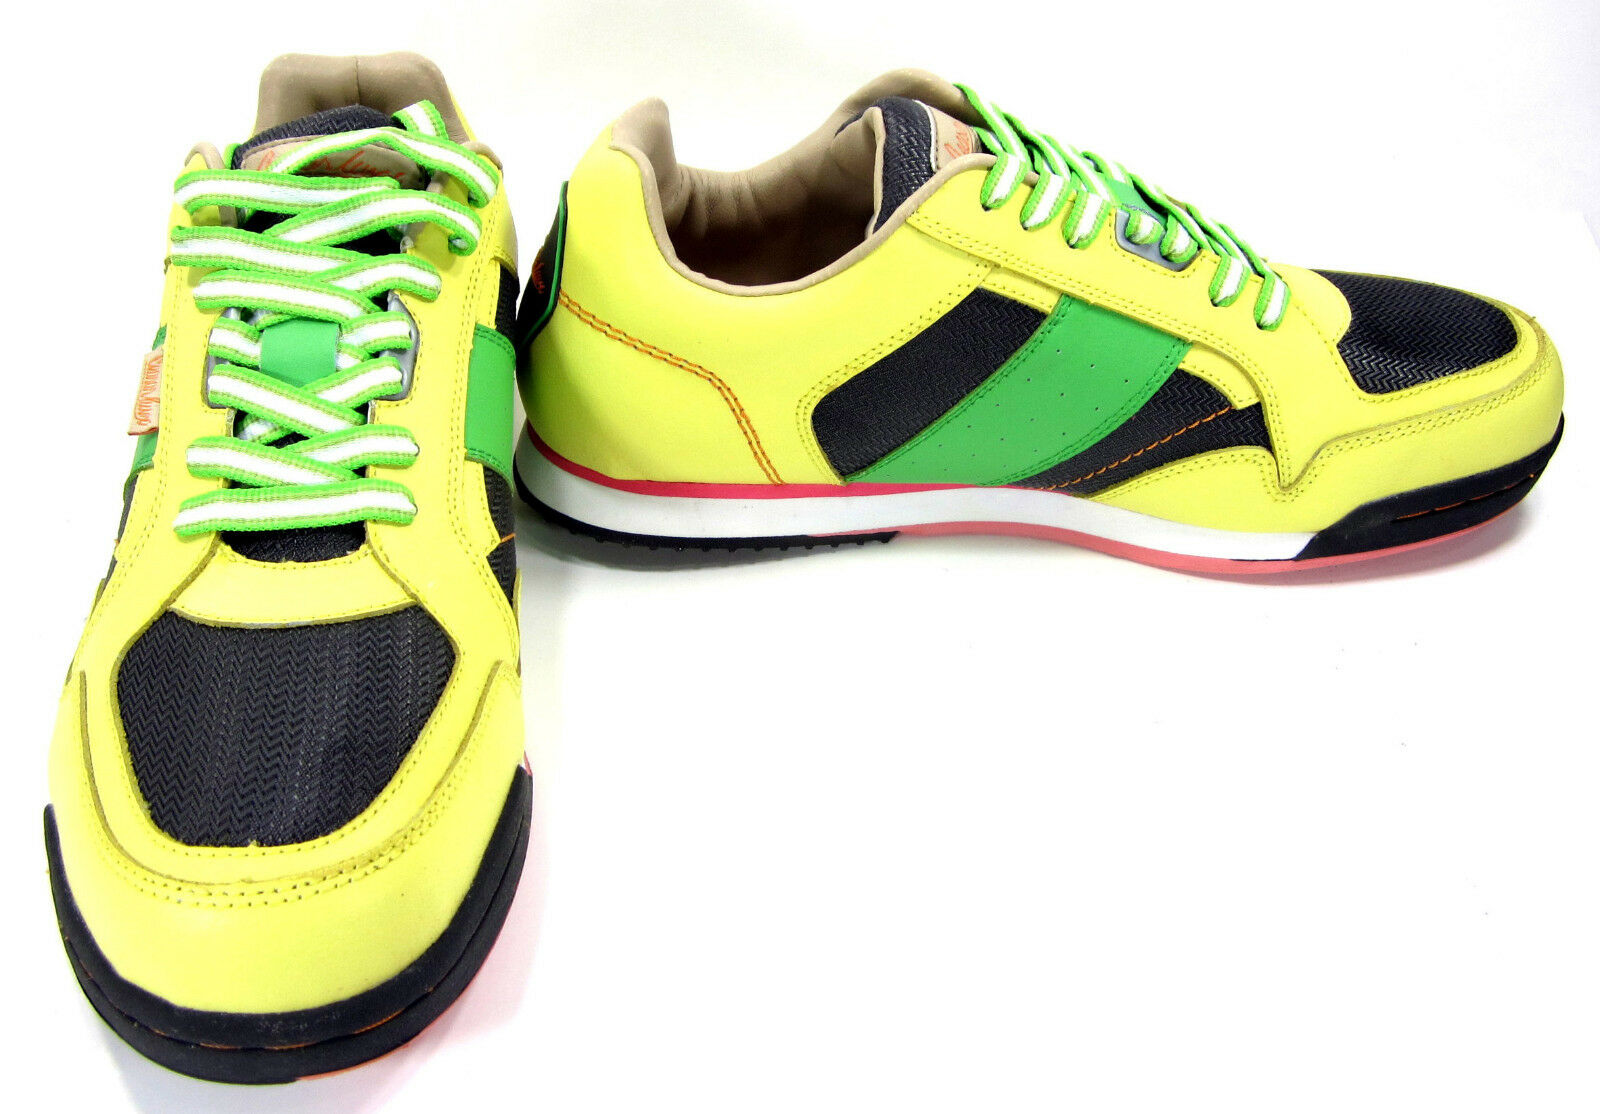 Ceaser Lunix Shoes CLX Runner SP Yellow/Green  Size 13